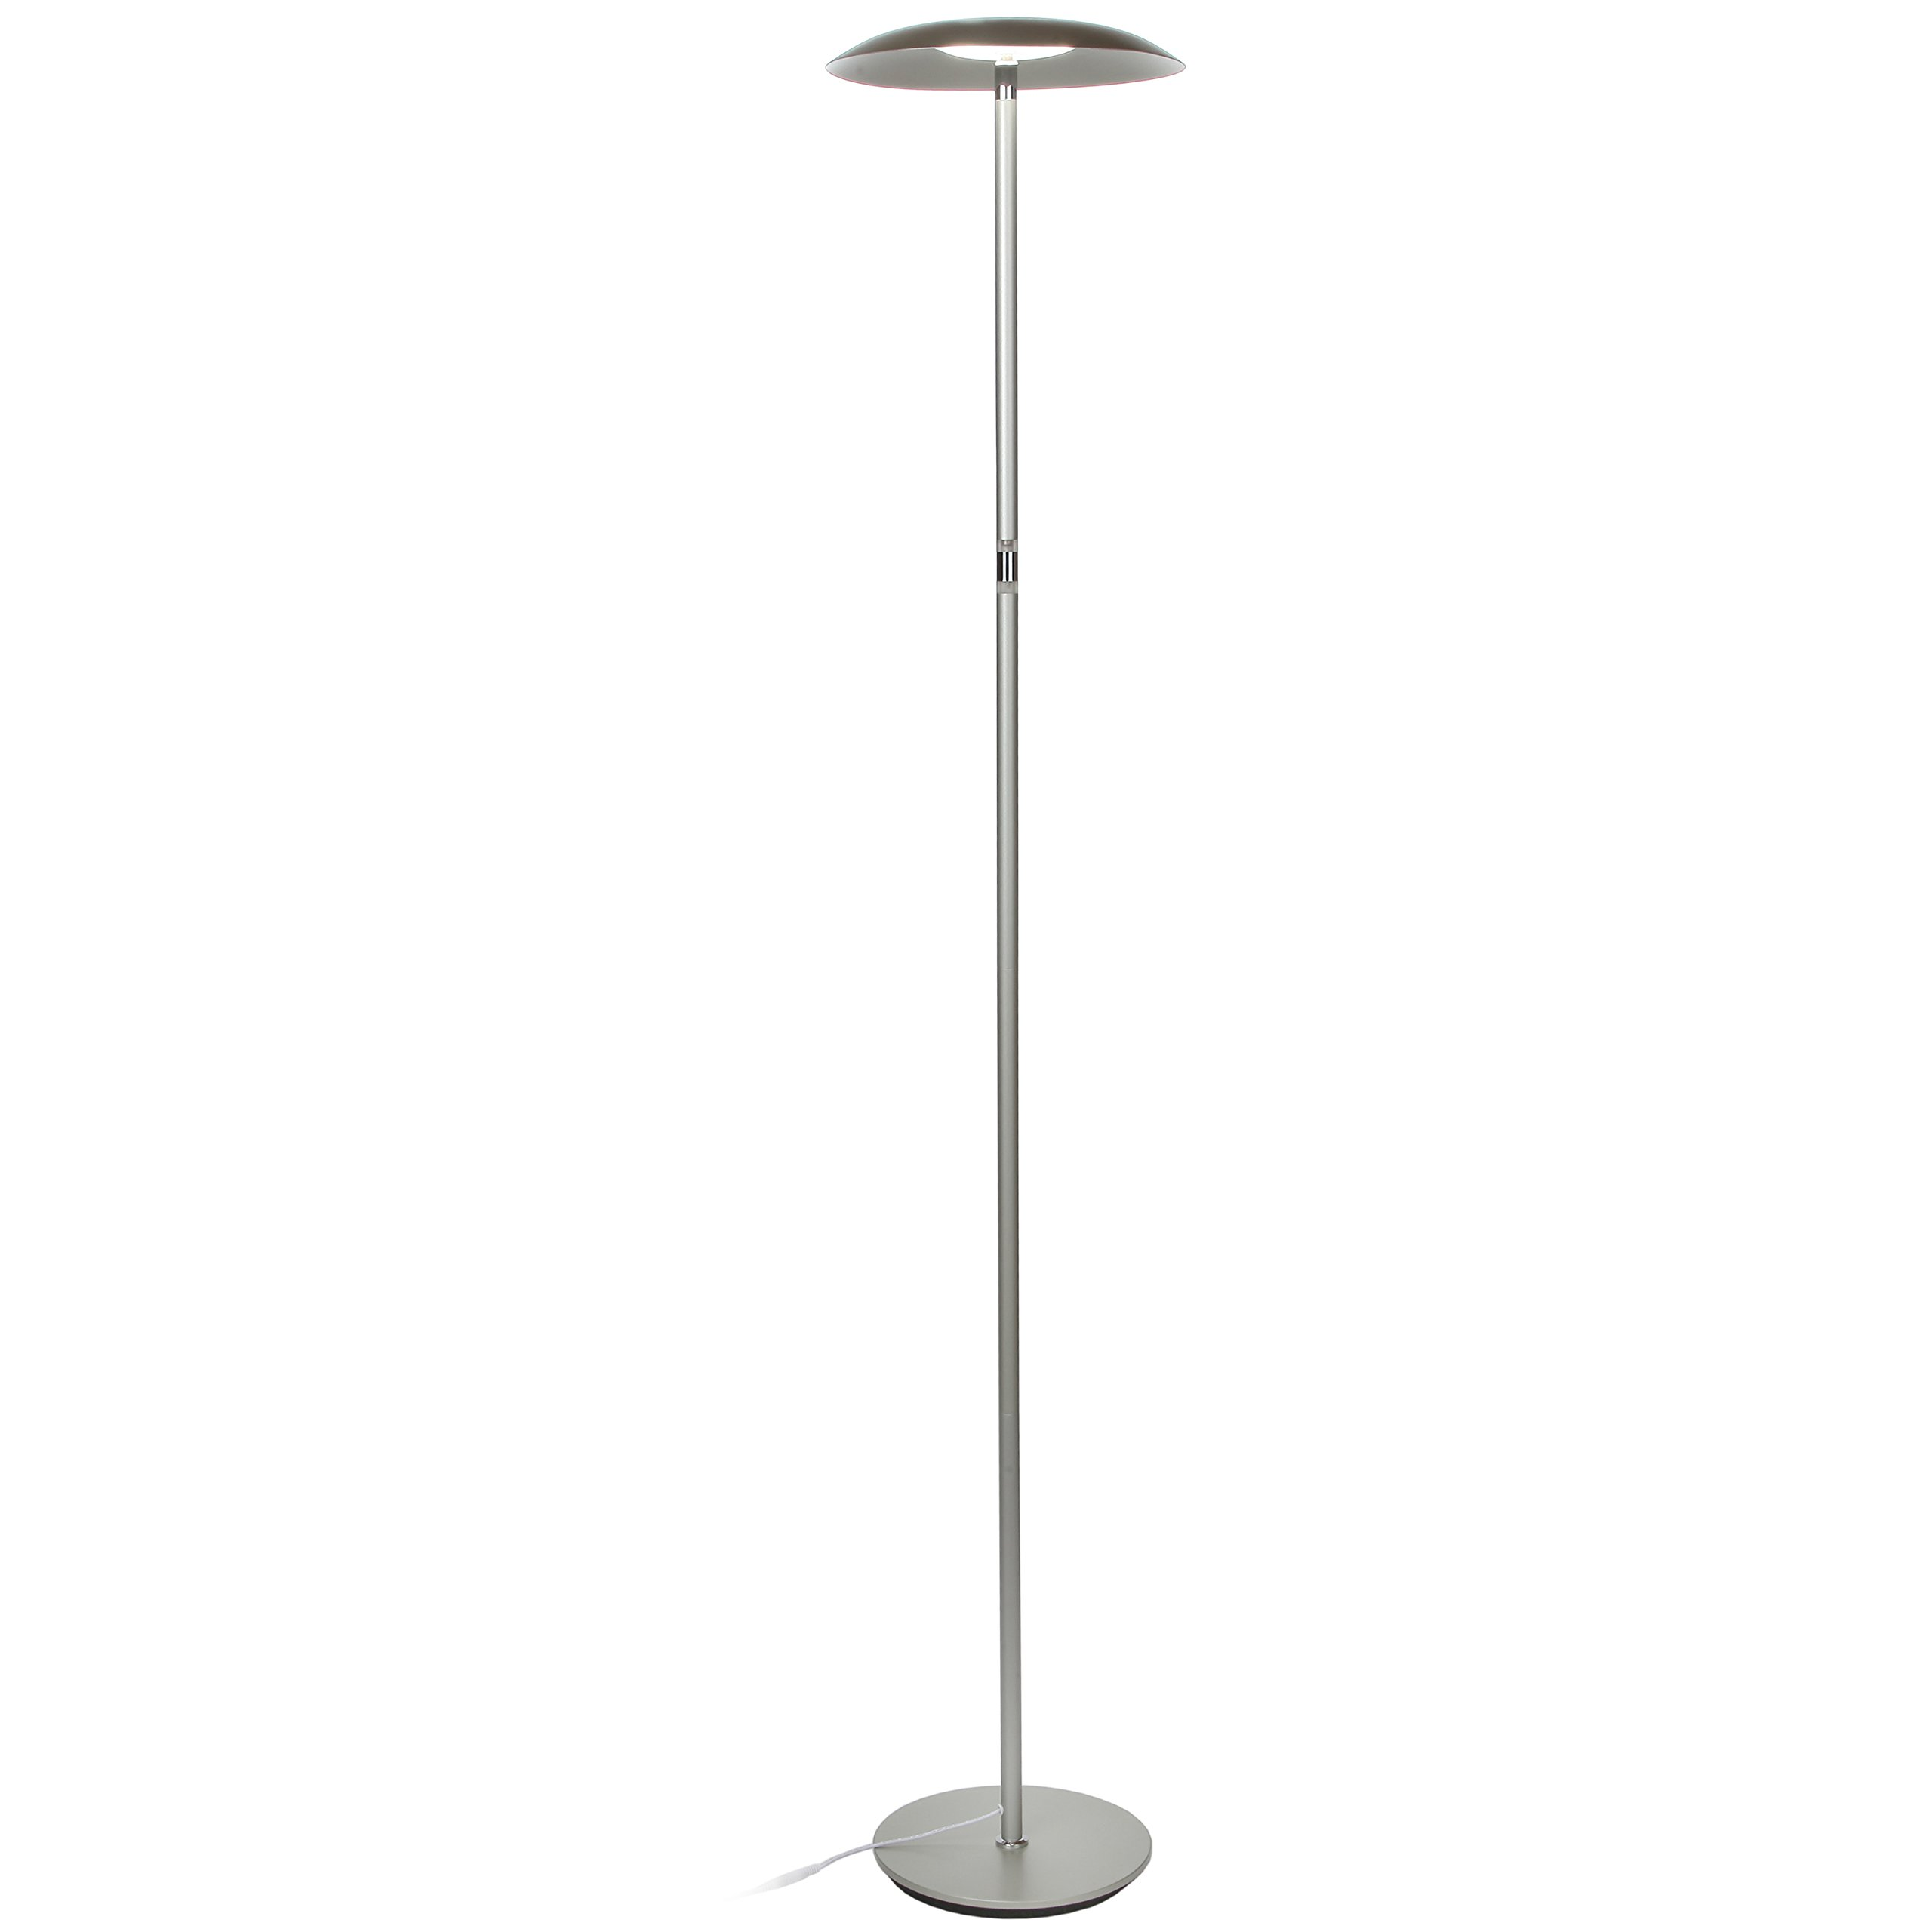 Brightech Sky Downlight - LED Reading Floor Lamp for Offices – Dimmable Craft & Hobby Light– Modern Tall Standing Pole Light for Living Room, Bedroom – Platinum Silver